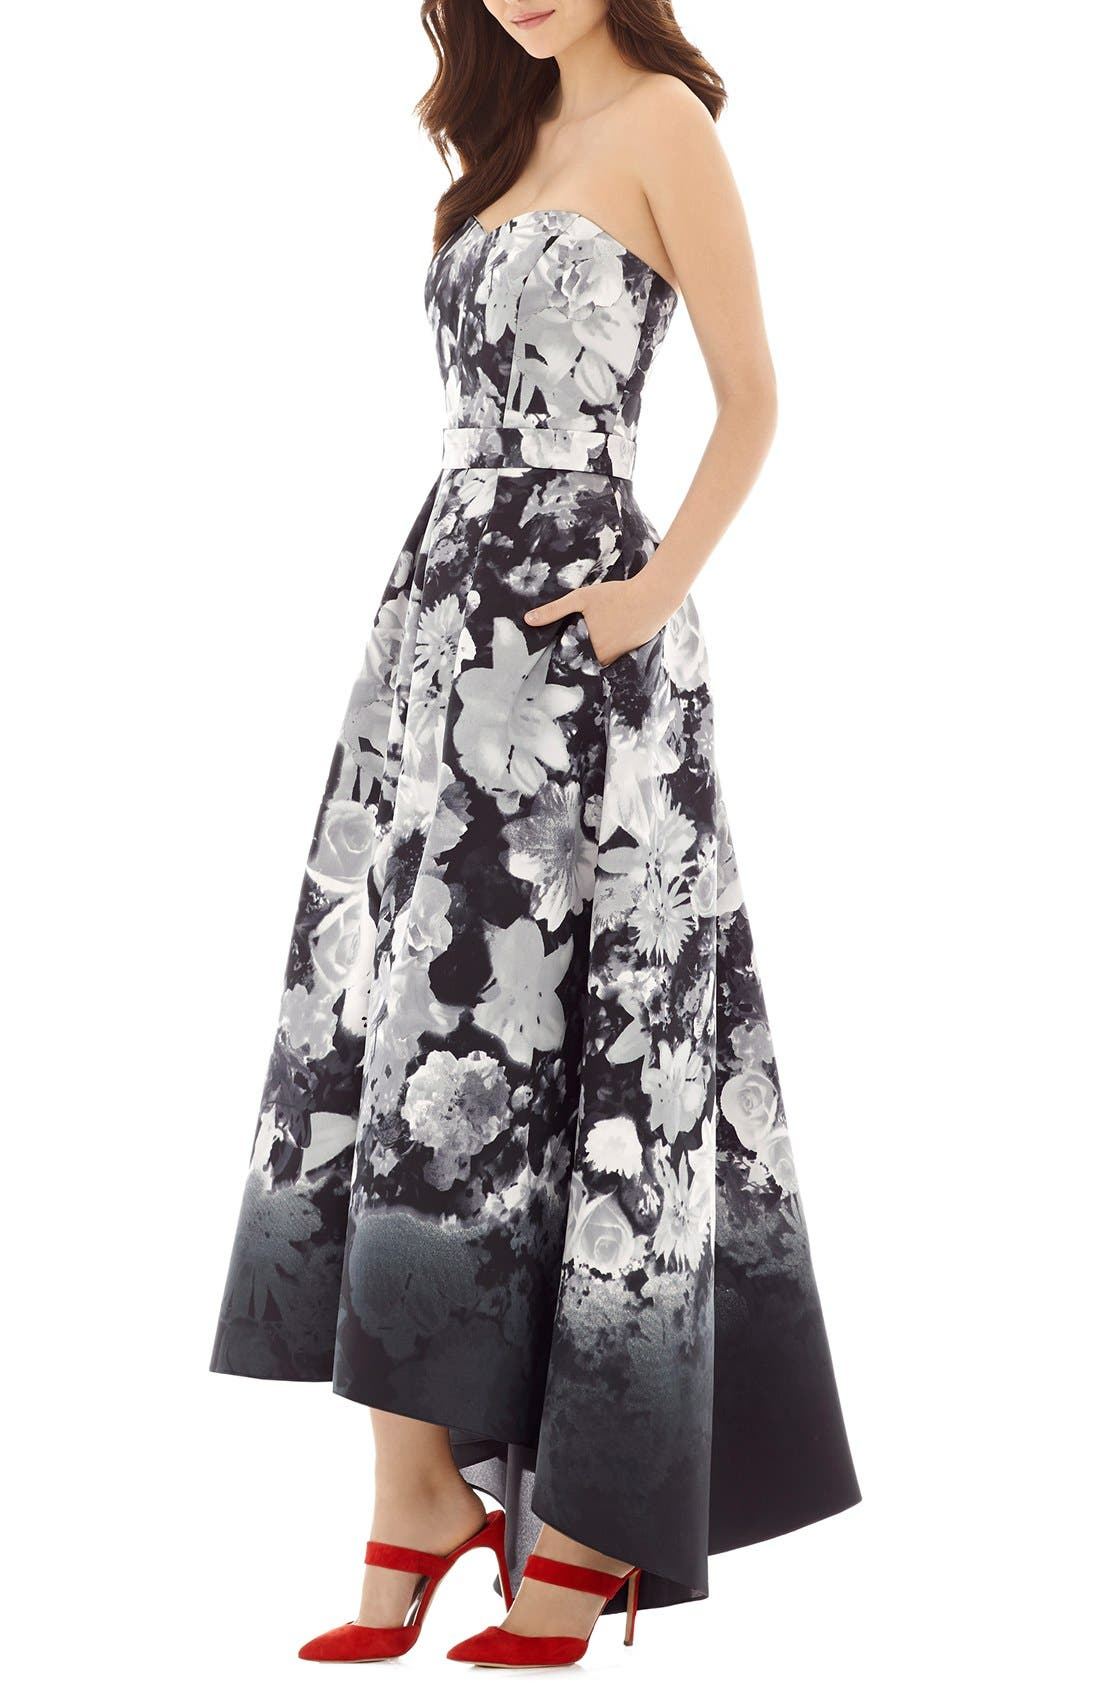 Alternate Image 1 Selected - Alfred Sung Floral Print Strapless Sateen High/Low Dress